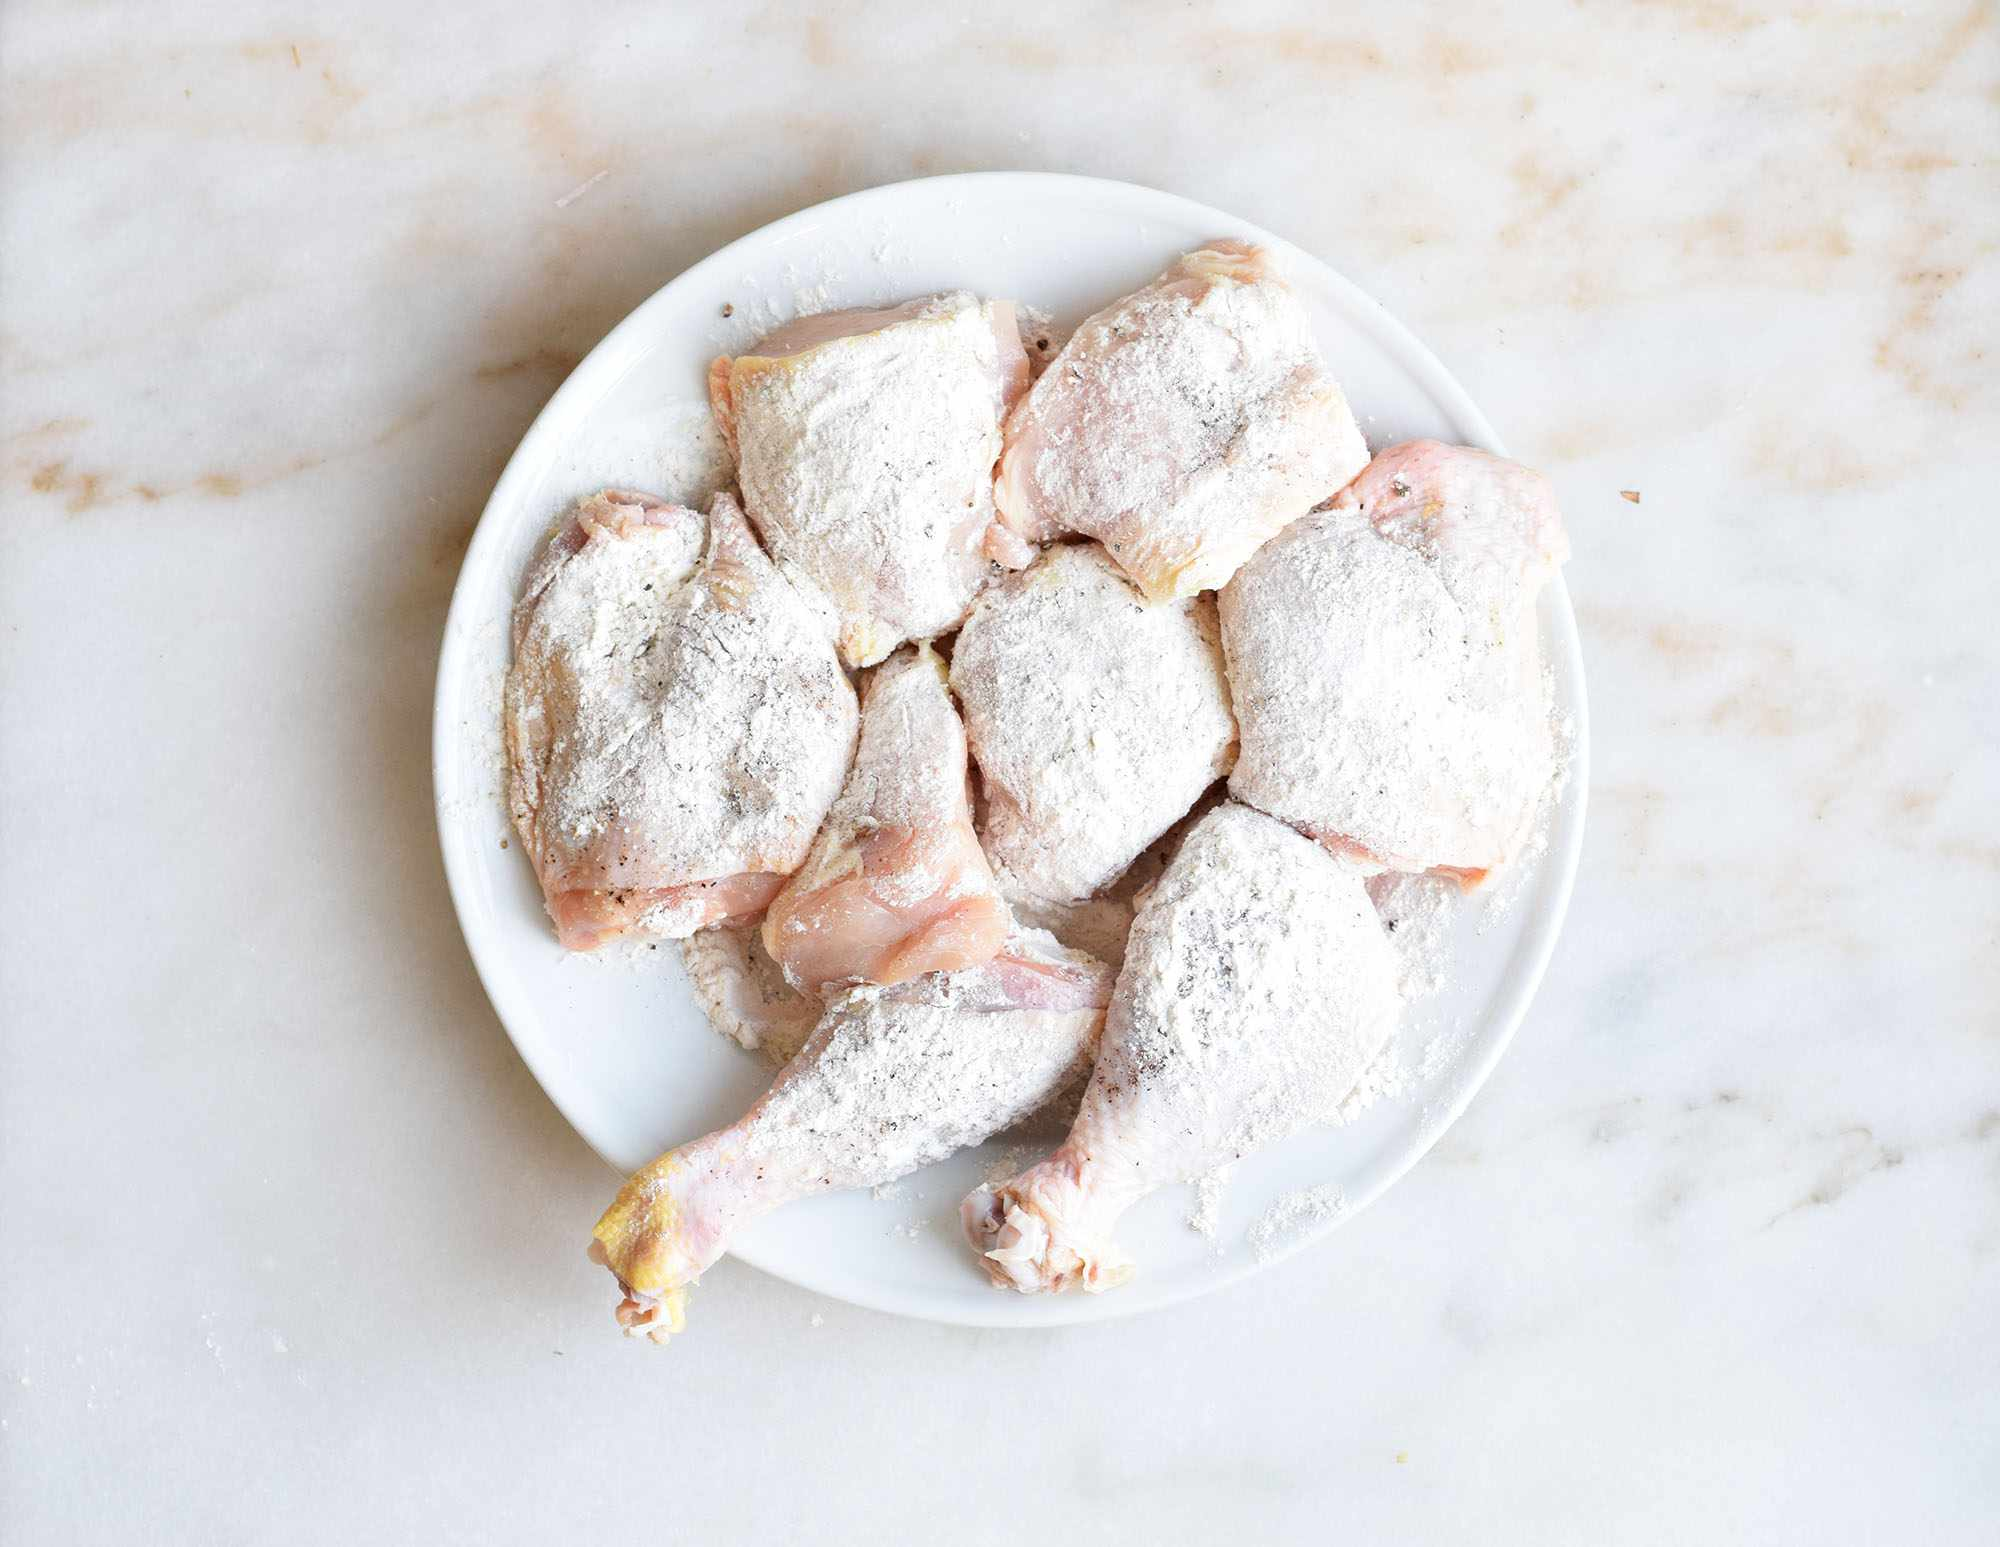 Chicken pieces coated in flour